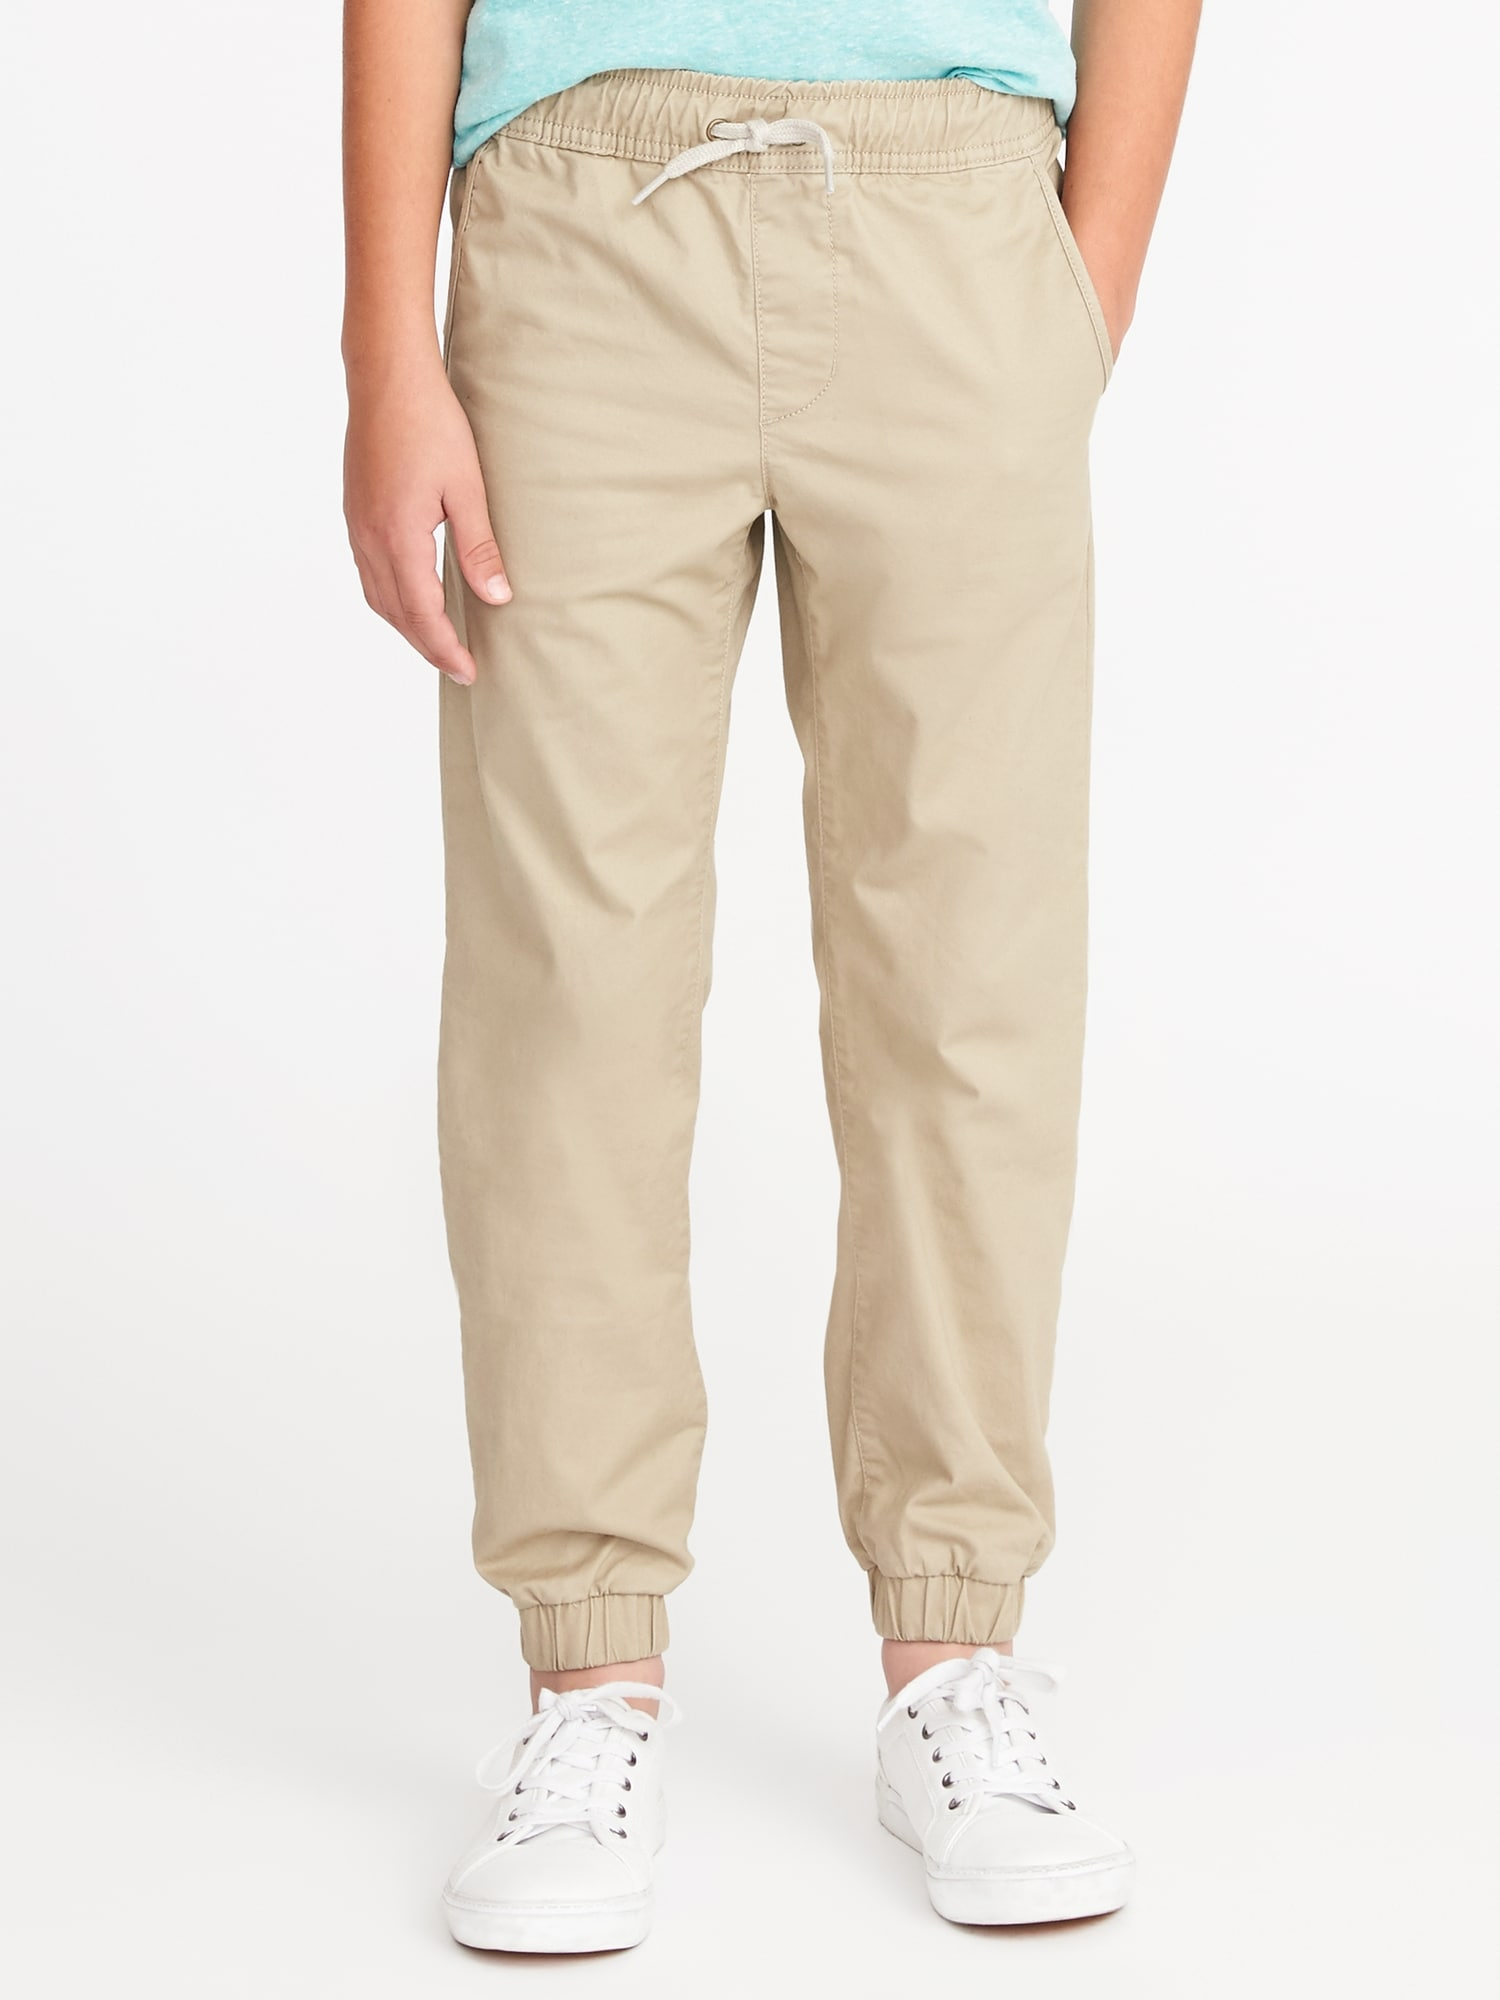 factory world-wide selection of meticulous dyeing processes Built-In Flex Twill Joggers for Boys